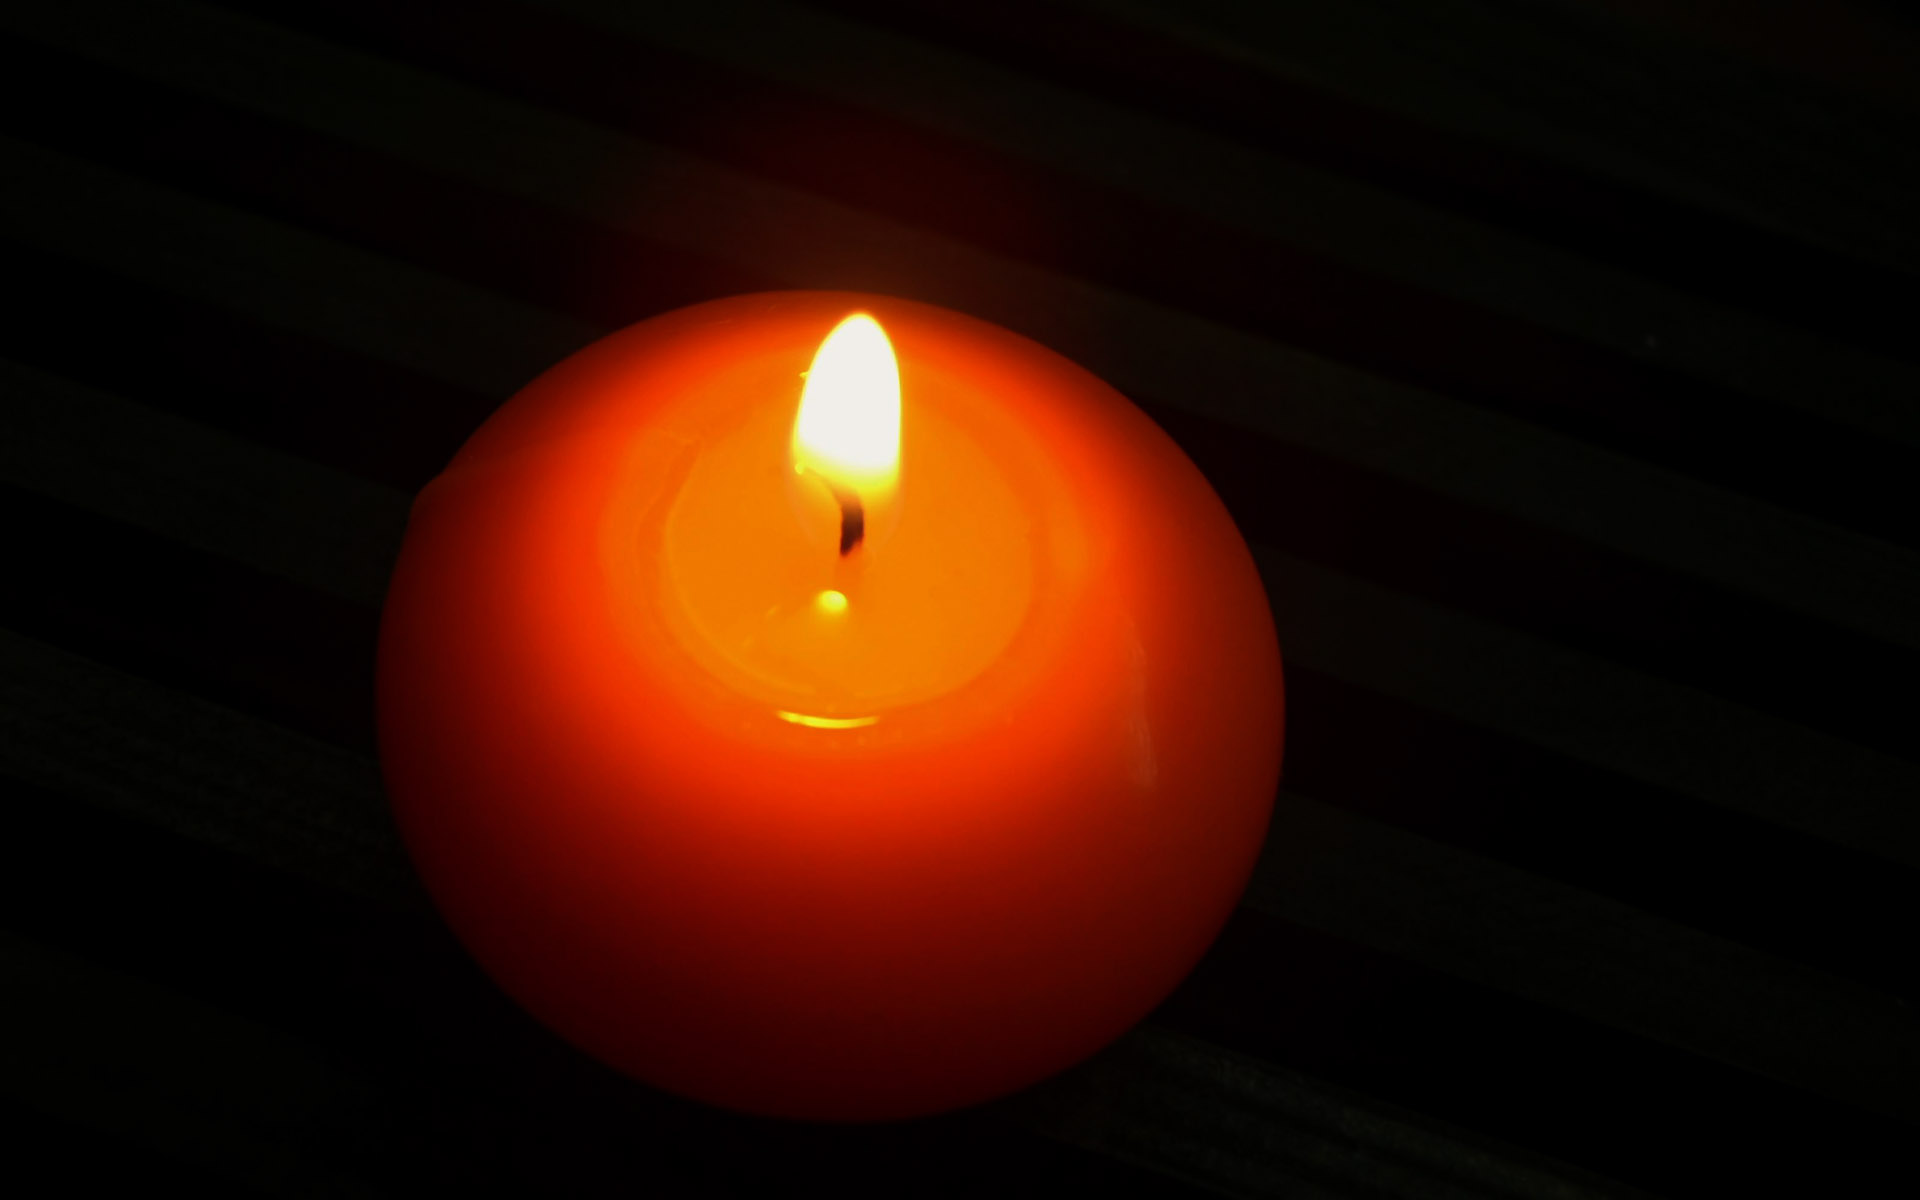 Candle wallpaper 2769